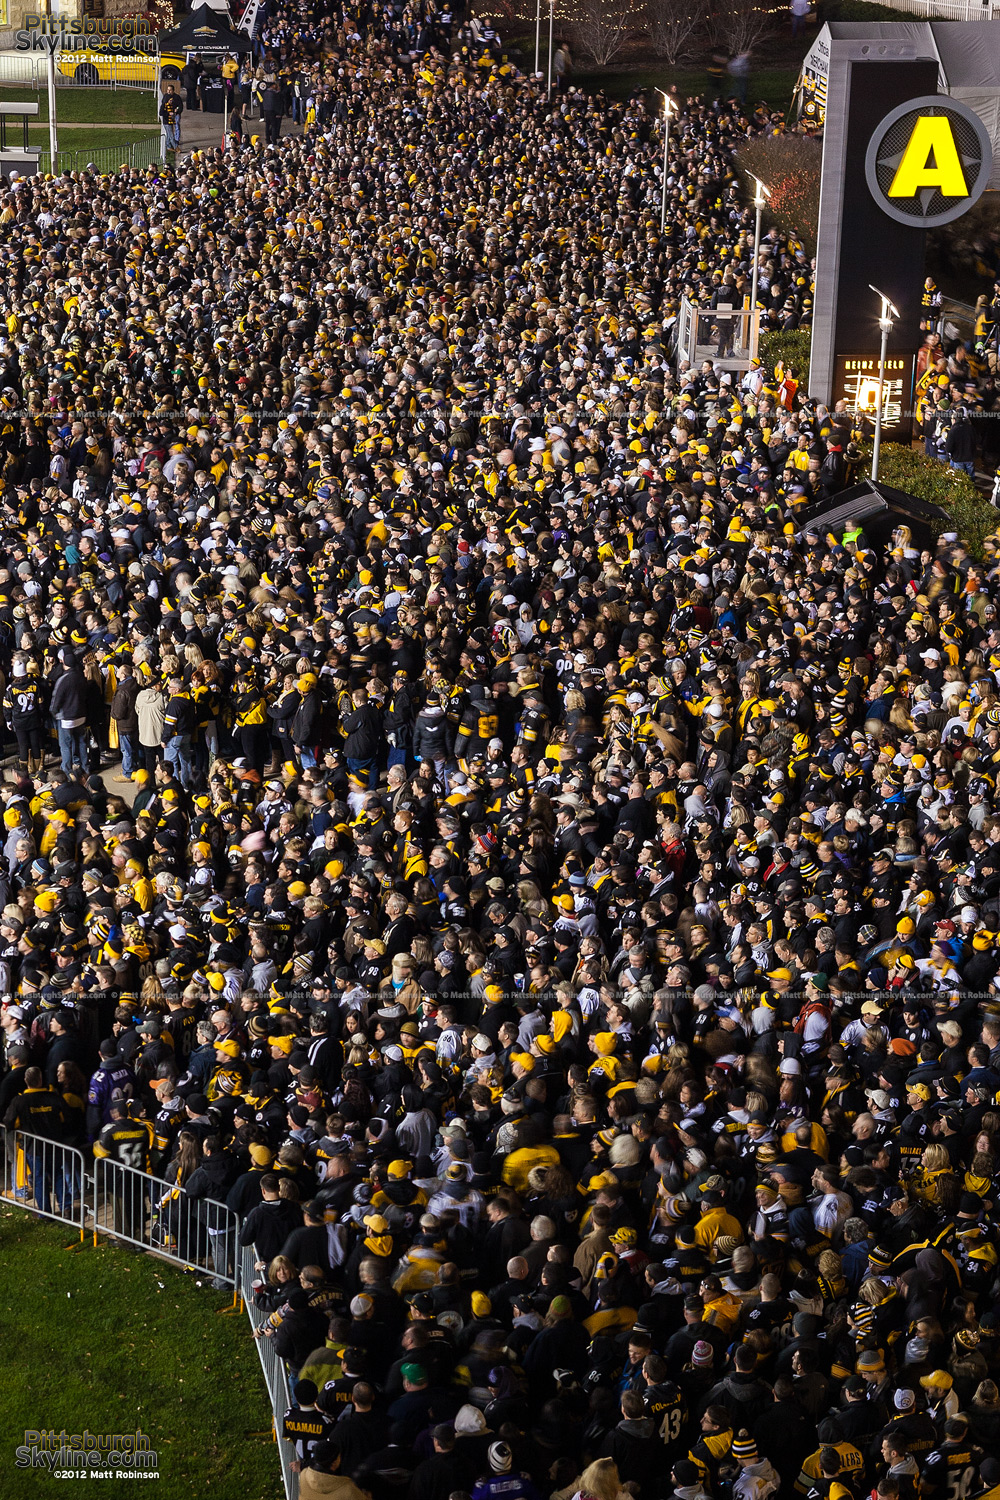 A sea of people enter Heinz Field